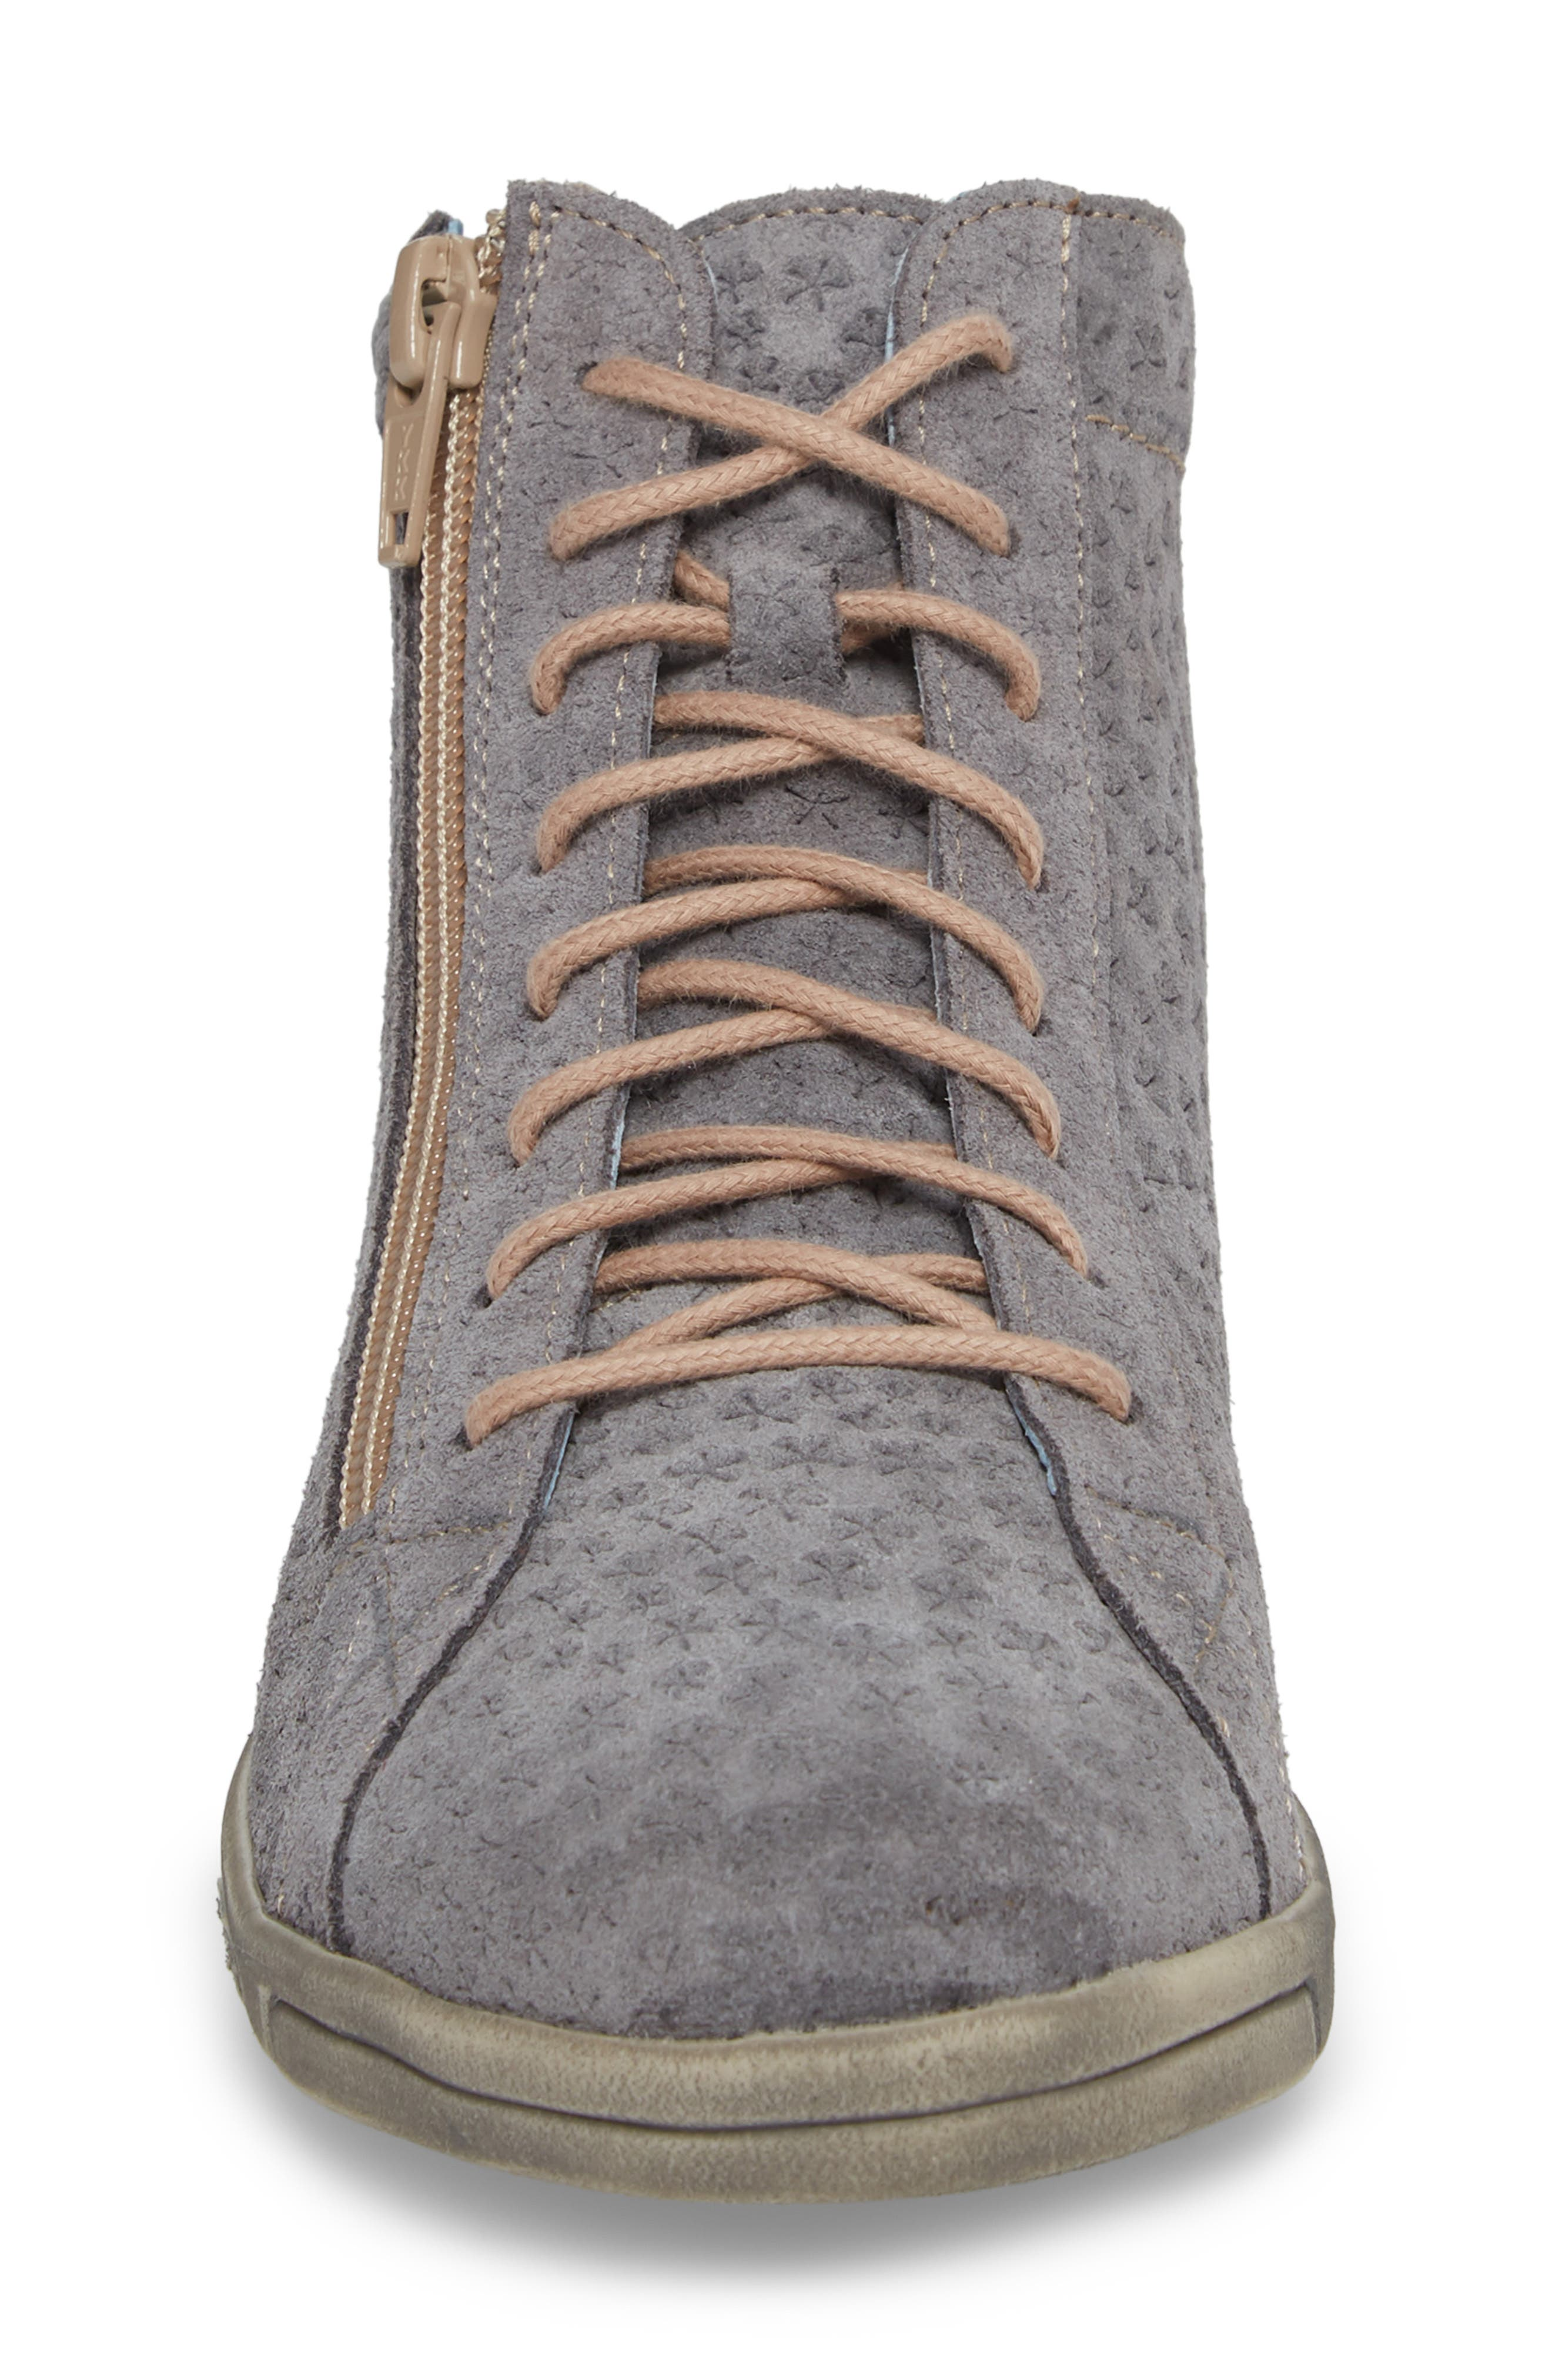 Aika Star Perforated High Top Sneaker,                             Alternate thumbnail 4, color,                             Grey Leather